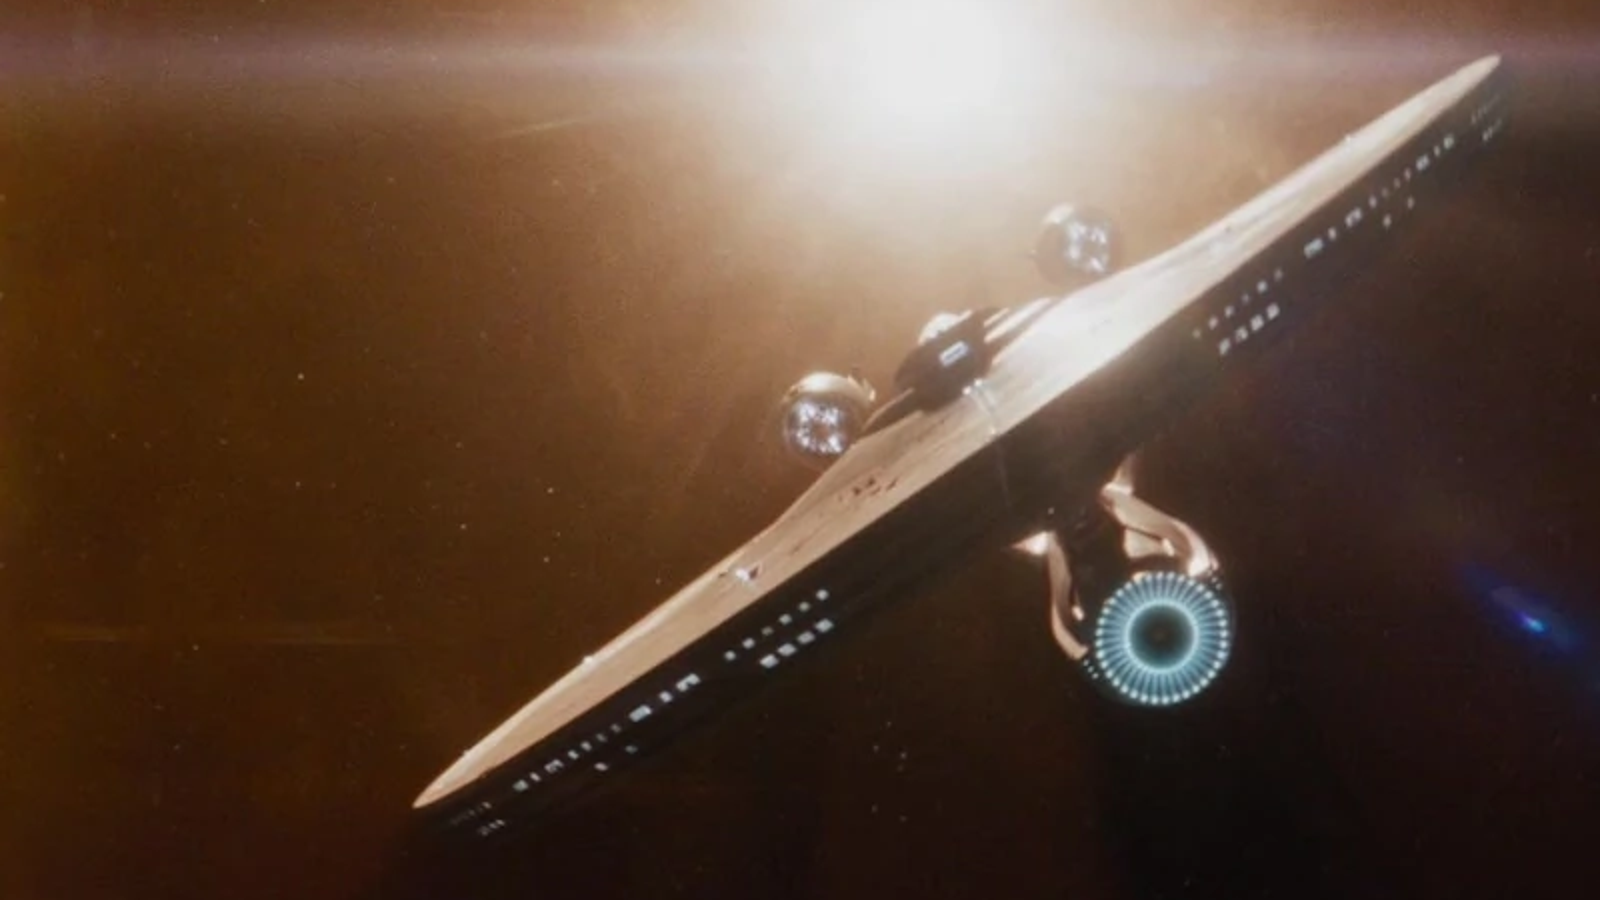 The Star Trek Movies You Don't Like Are Now Owned by the Same Company That Owns the Trek Movies You Only Mostly Dislike